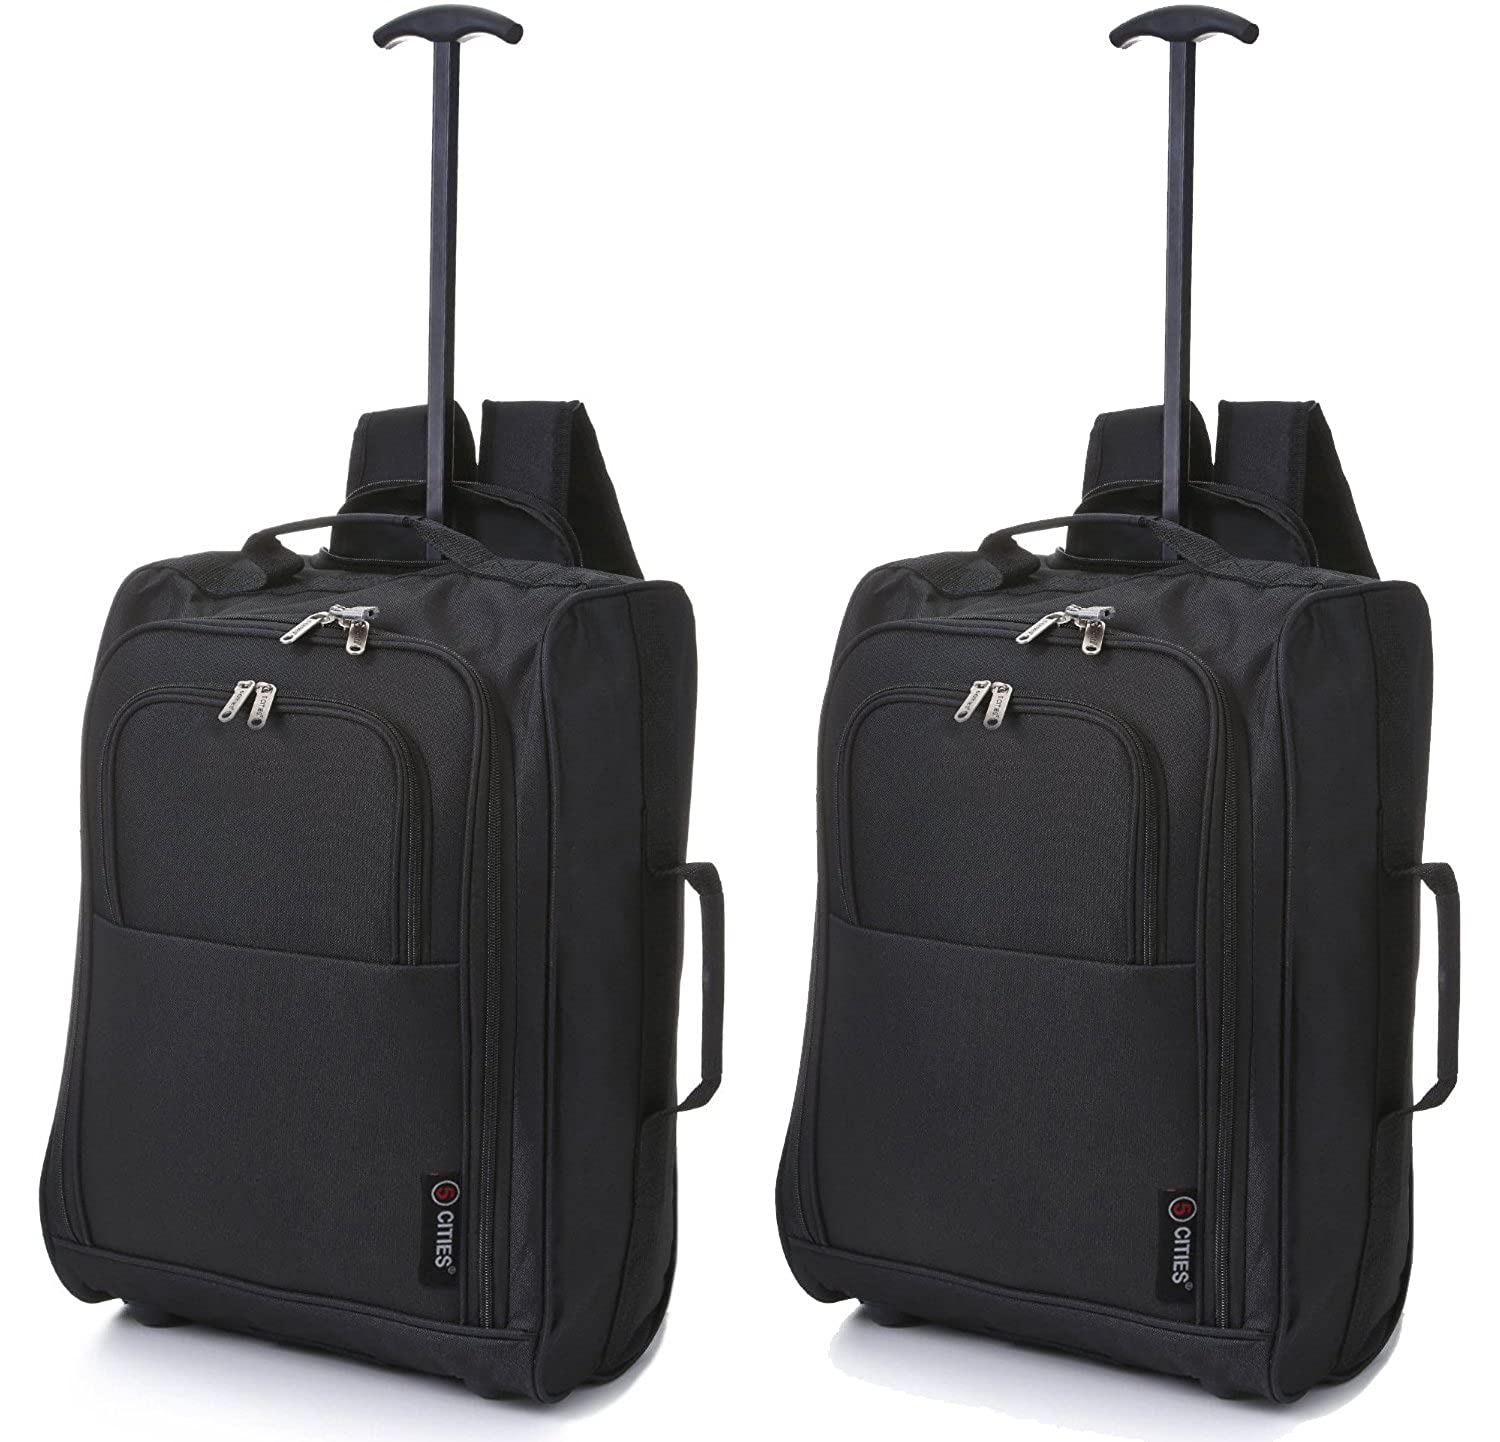 Amazon.com: 5 Cities Cabin Approved Multi-use Carry On Flight Bags ...